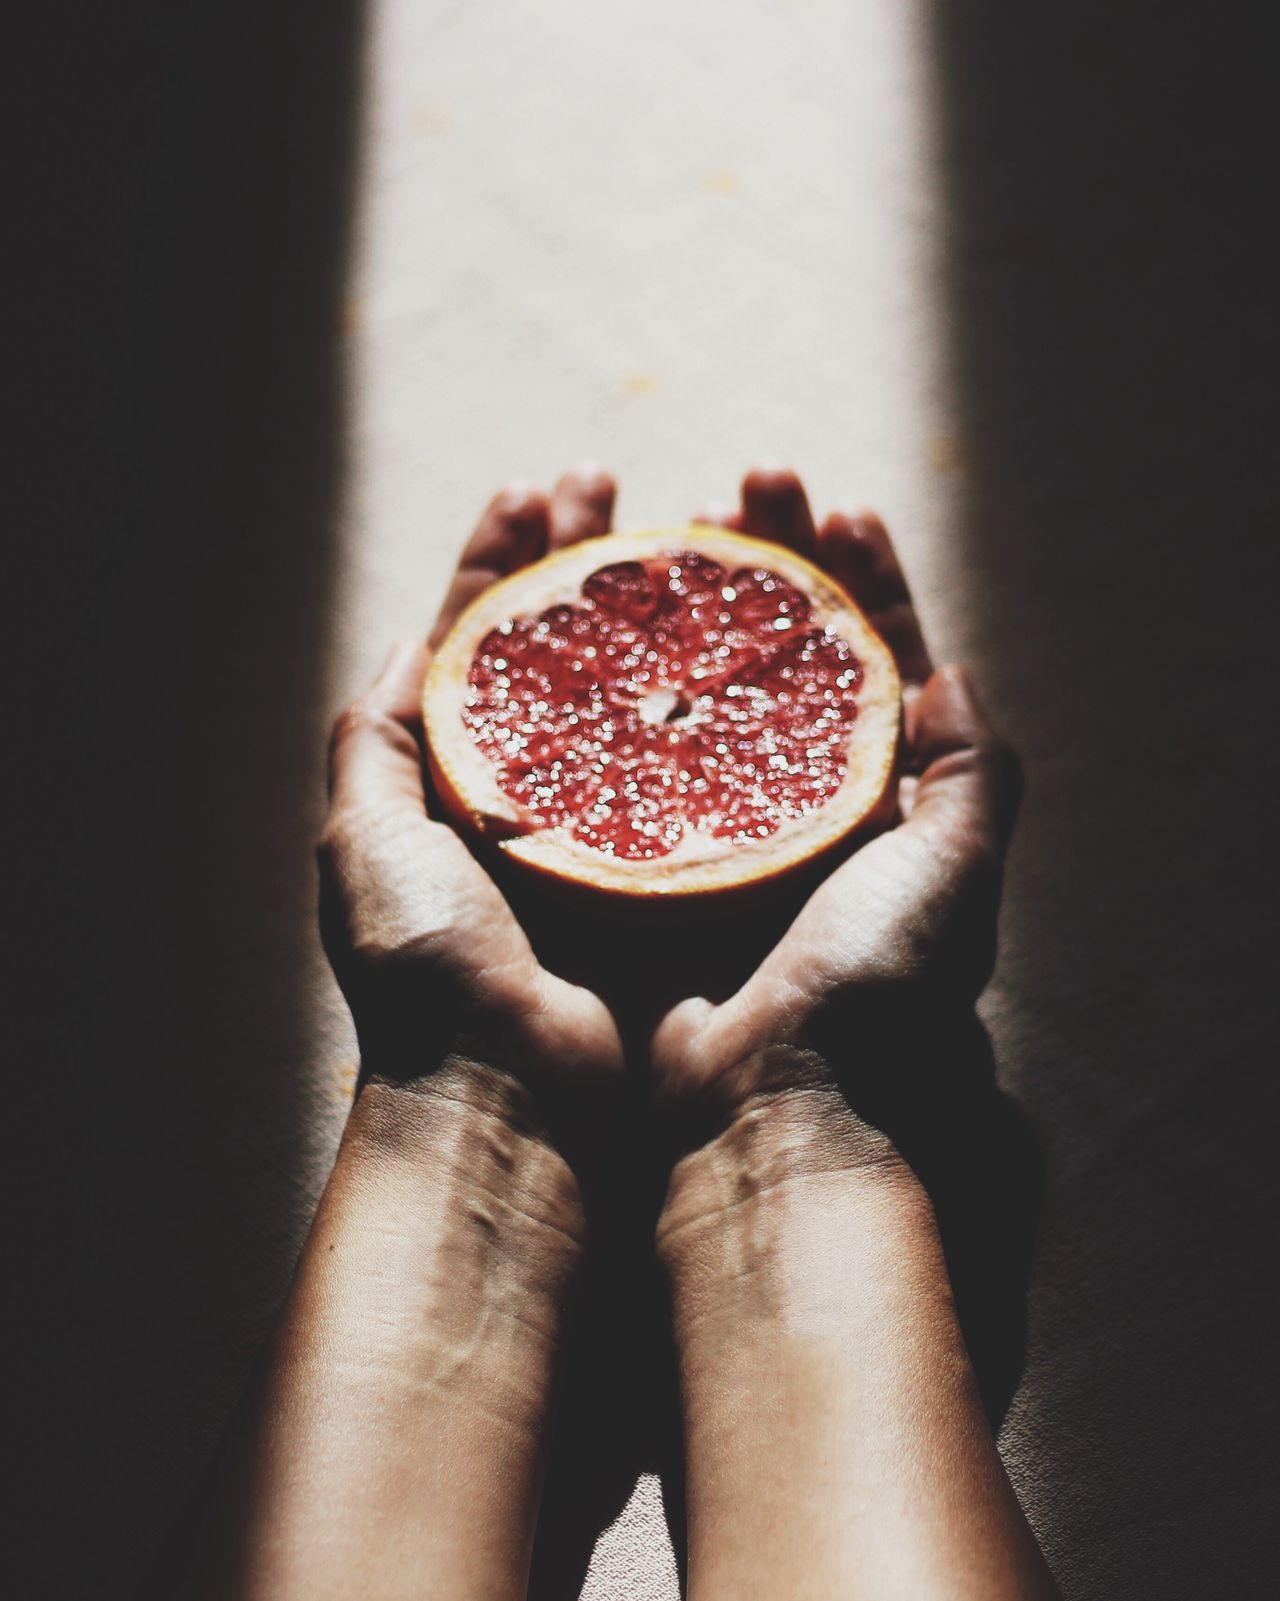 Food And Drink Food Freshness Healthy Eating One Person Real People Person Indoors  Close-up Day Eye4photography  Human Body Part Blood Orange Red SLICE Holding Freshness Pomegranate Fruit Food And Drink